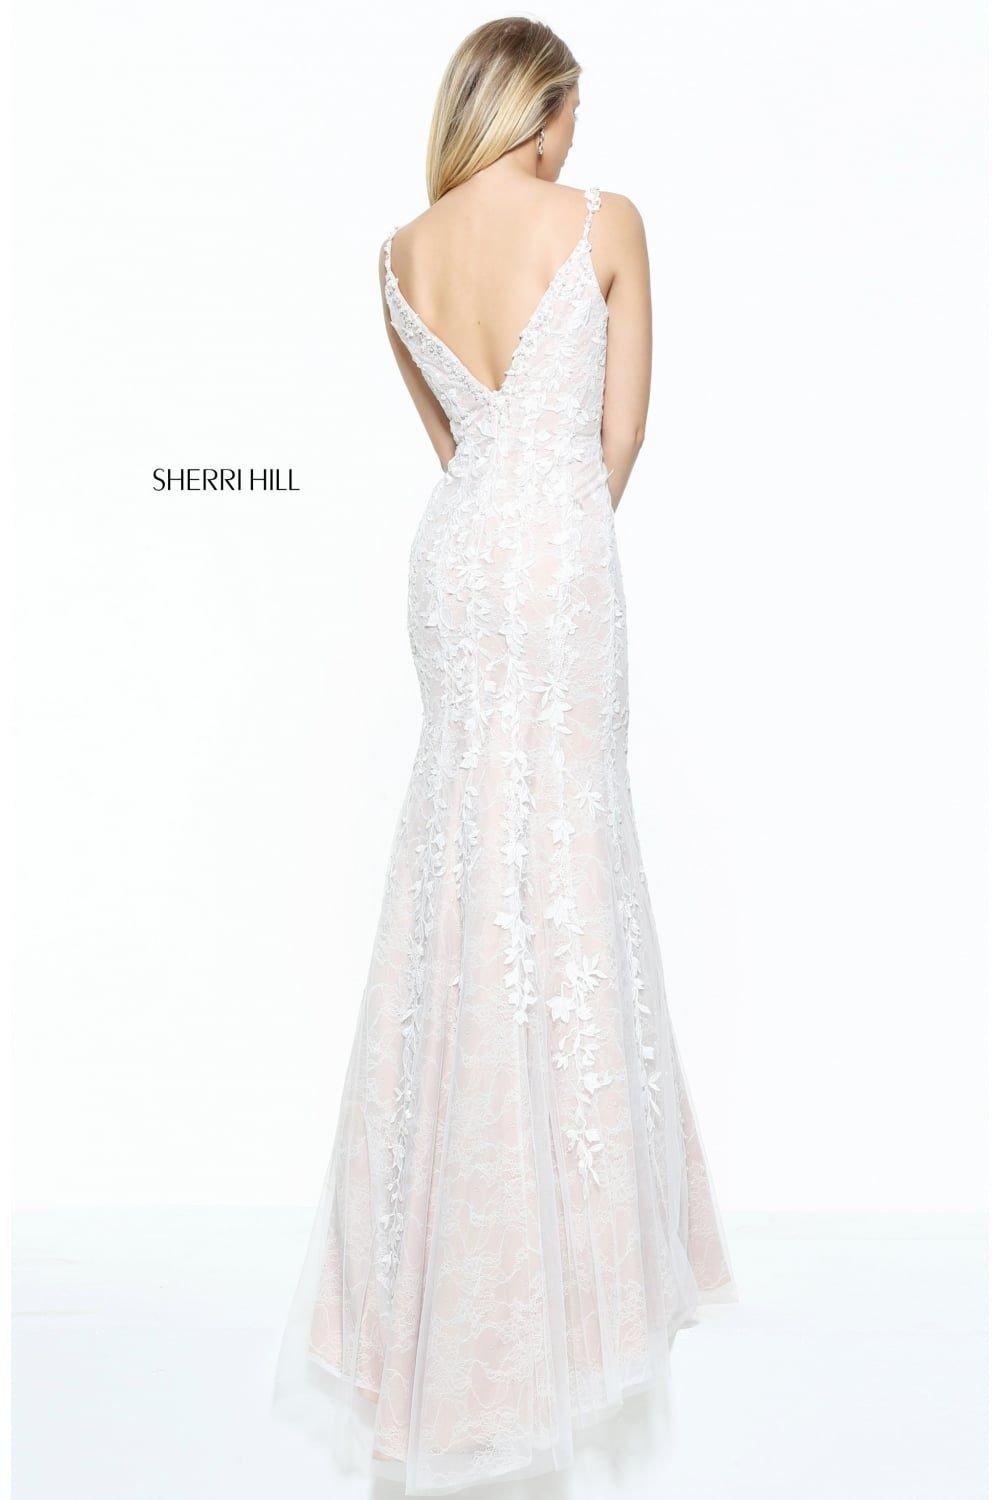 Sherri Hill 50938 Prom Dress